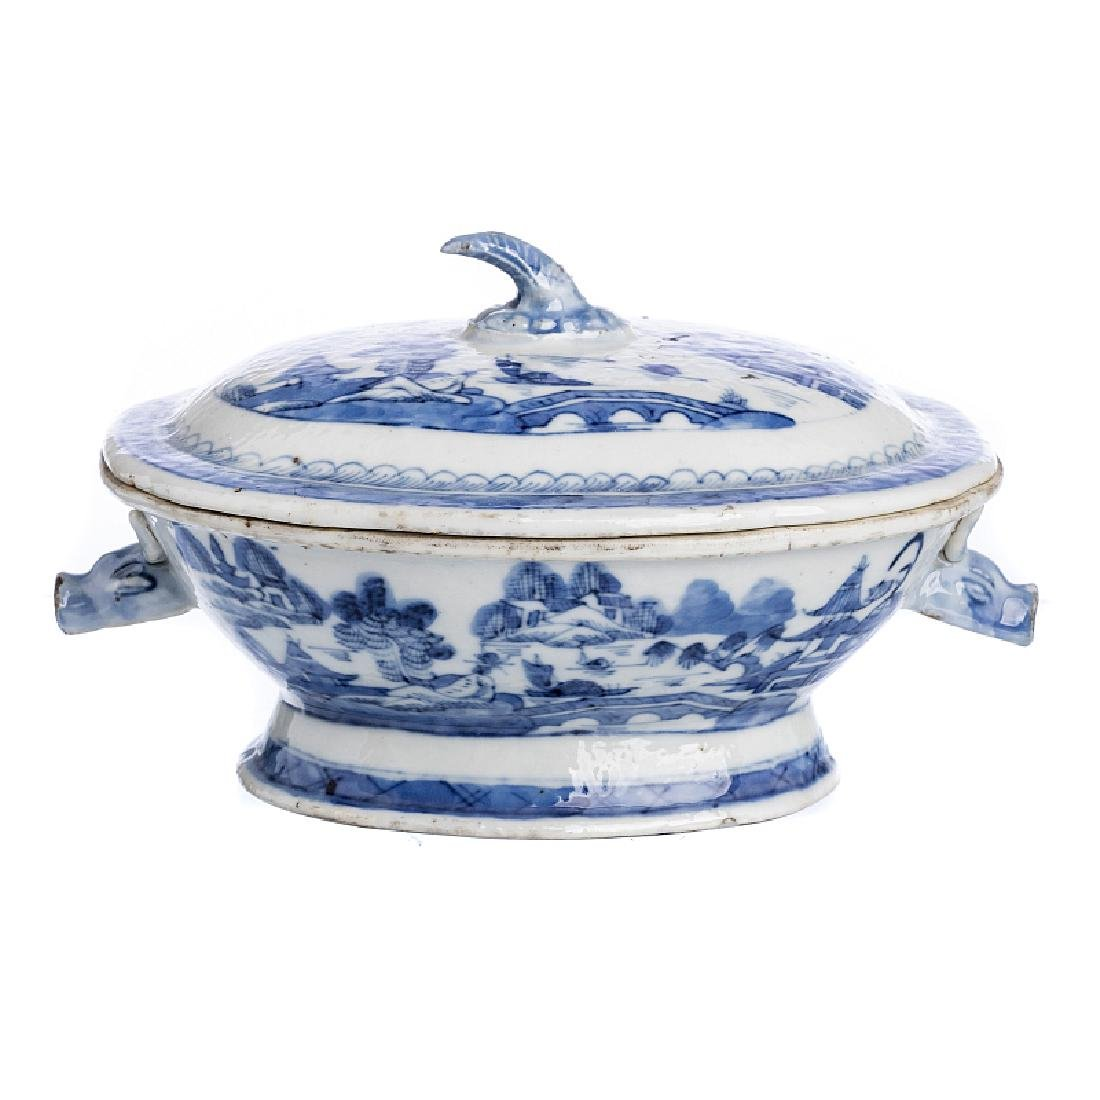 Miniature tureen in Chinese porcelain